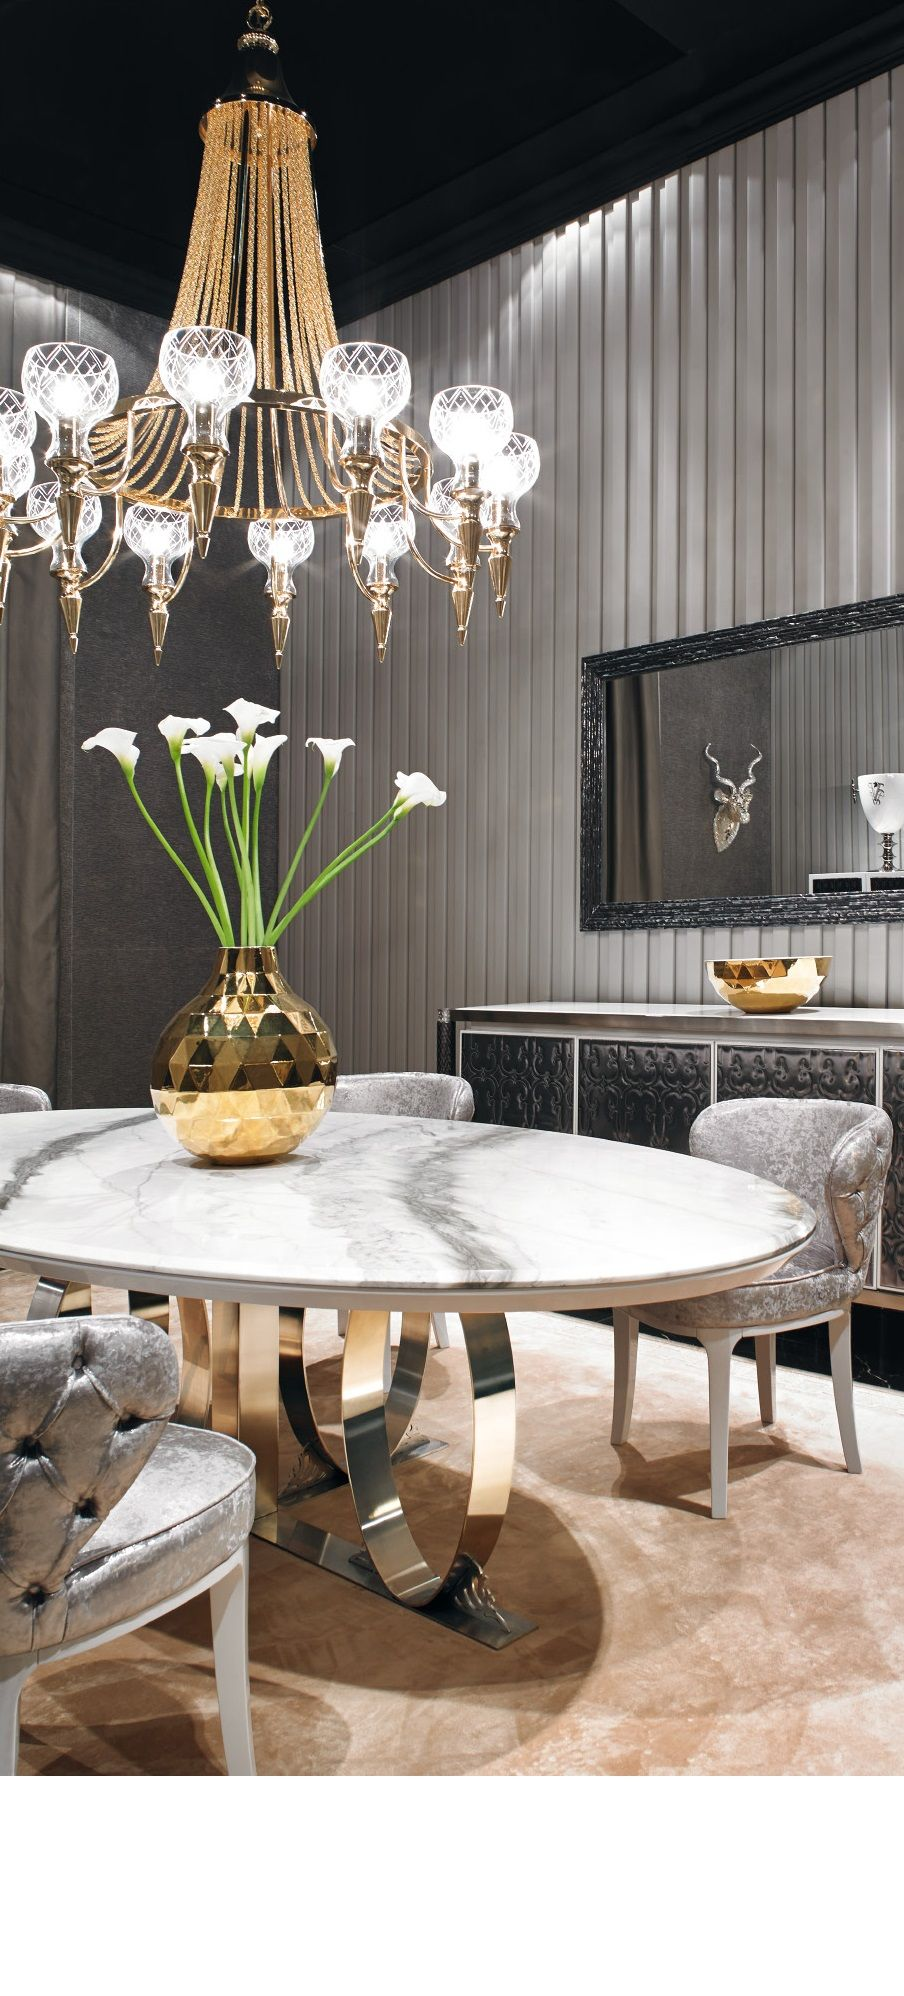 Stunning modern dining table with a perfect base.